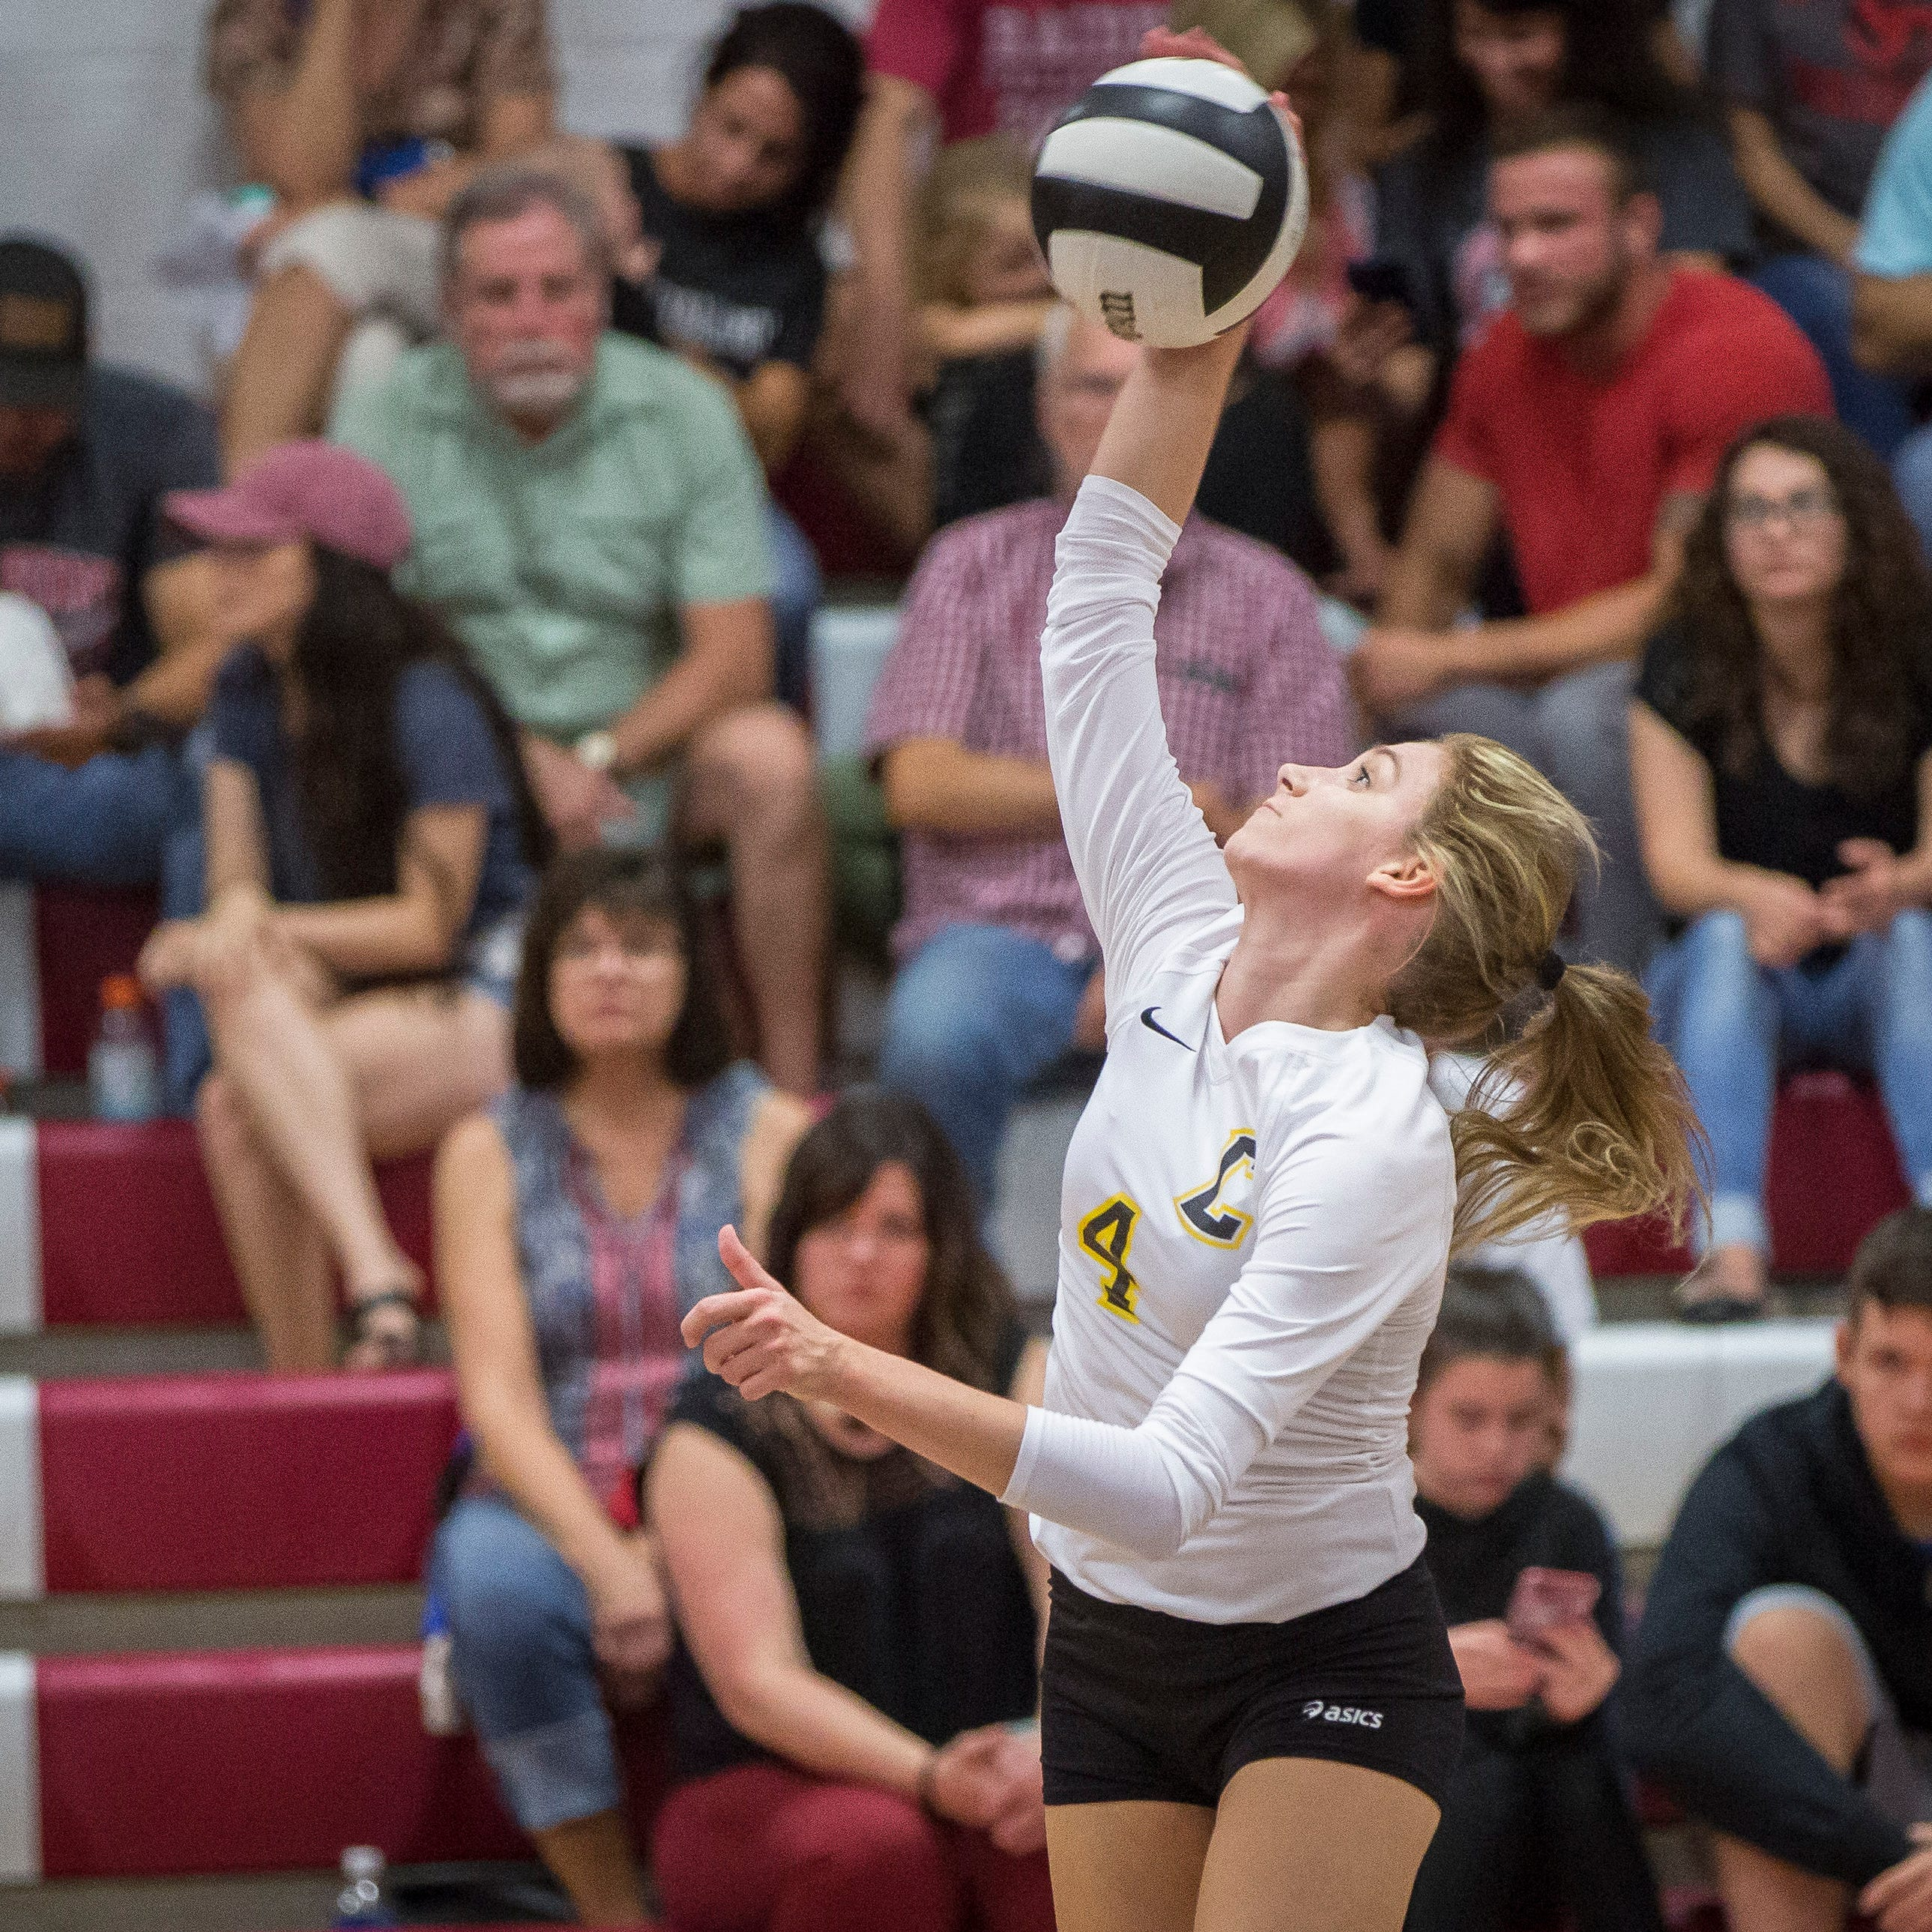 IHSAA volleyball: Cowan wins second straight sectional championship